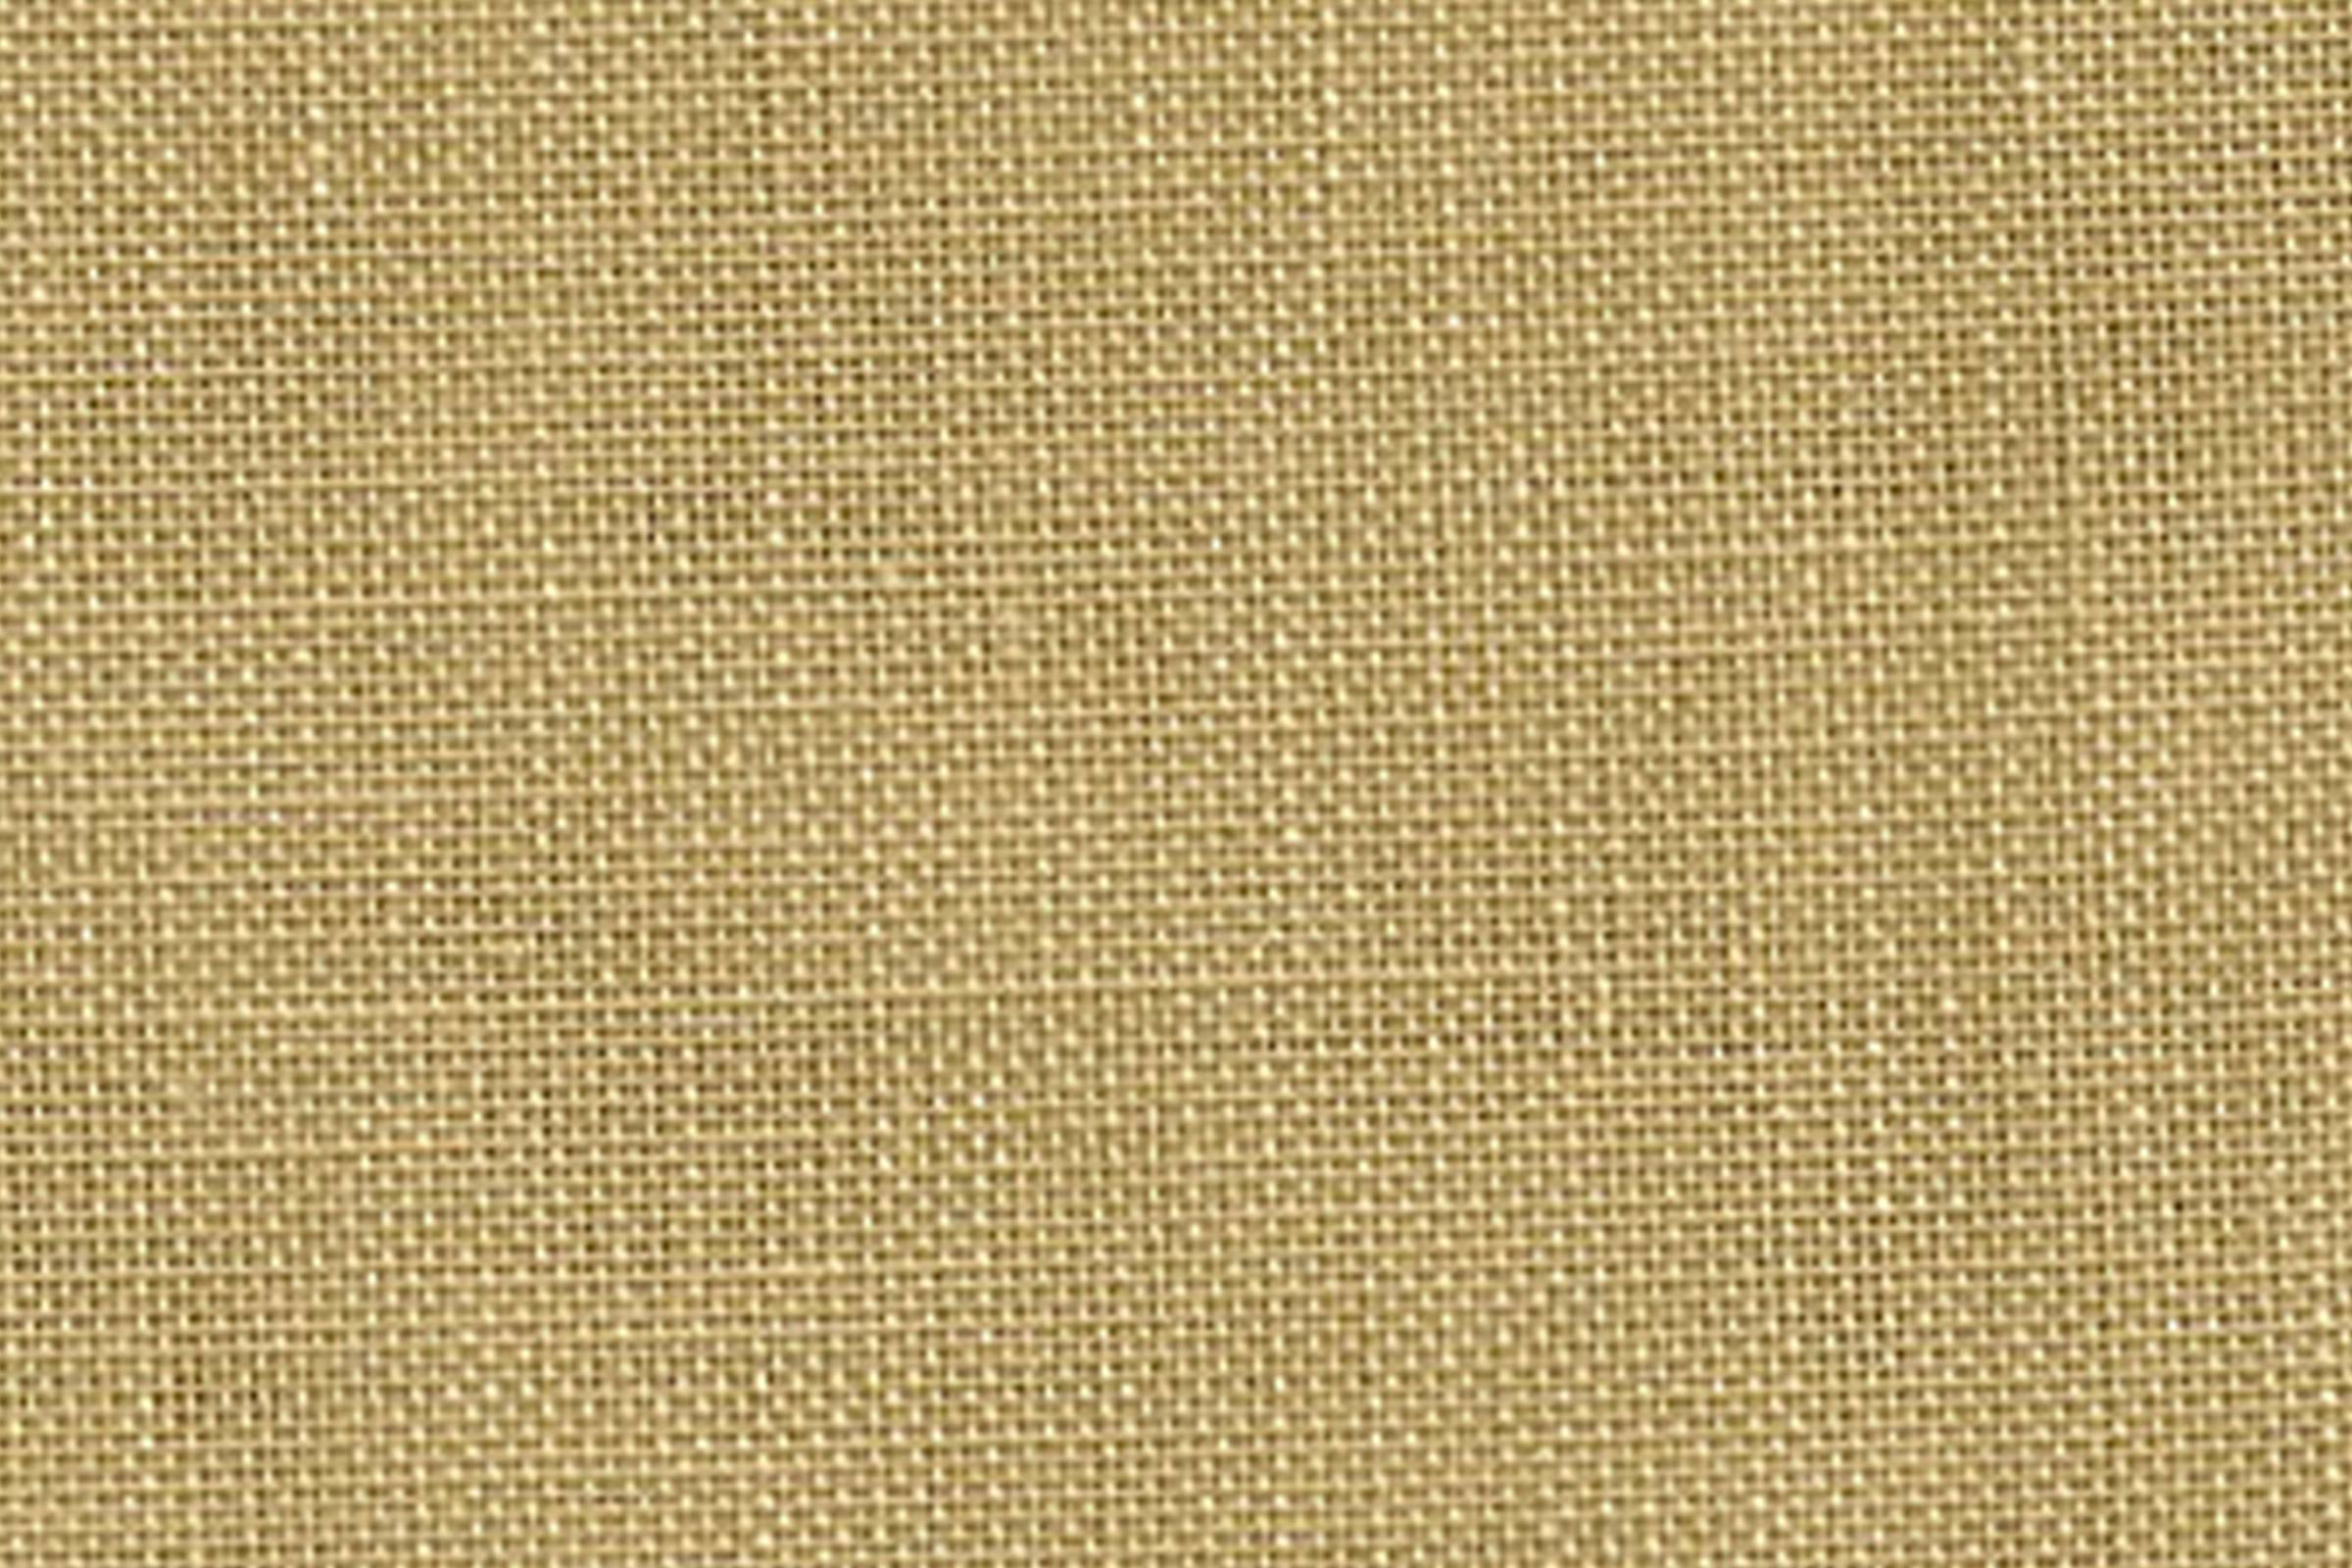 What Suits Are Made From: Linen